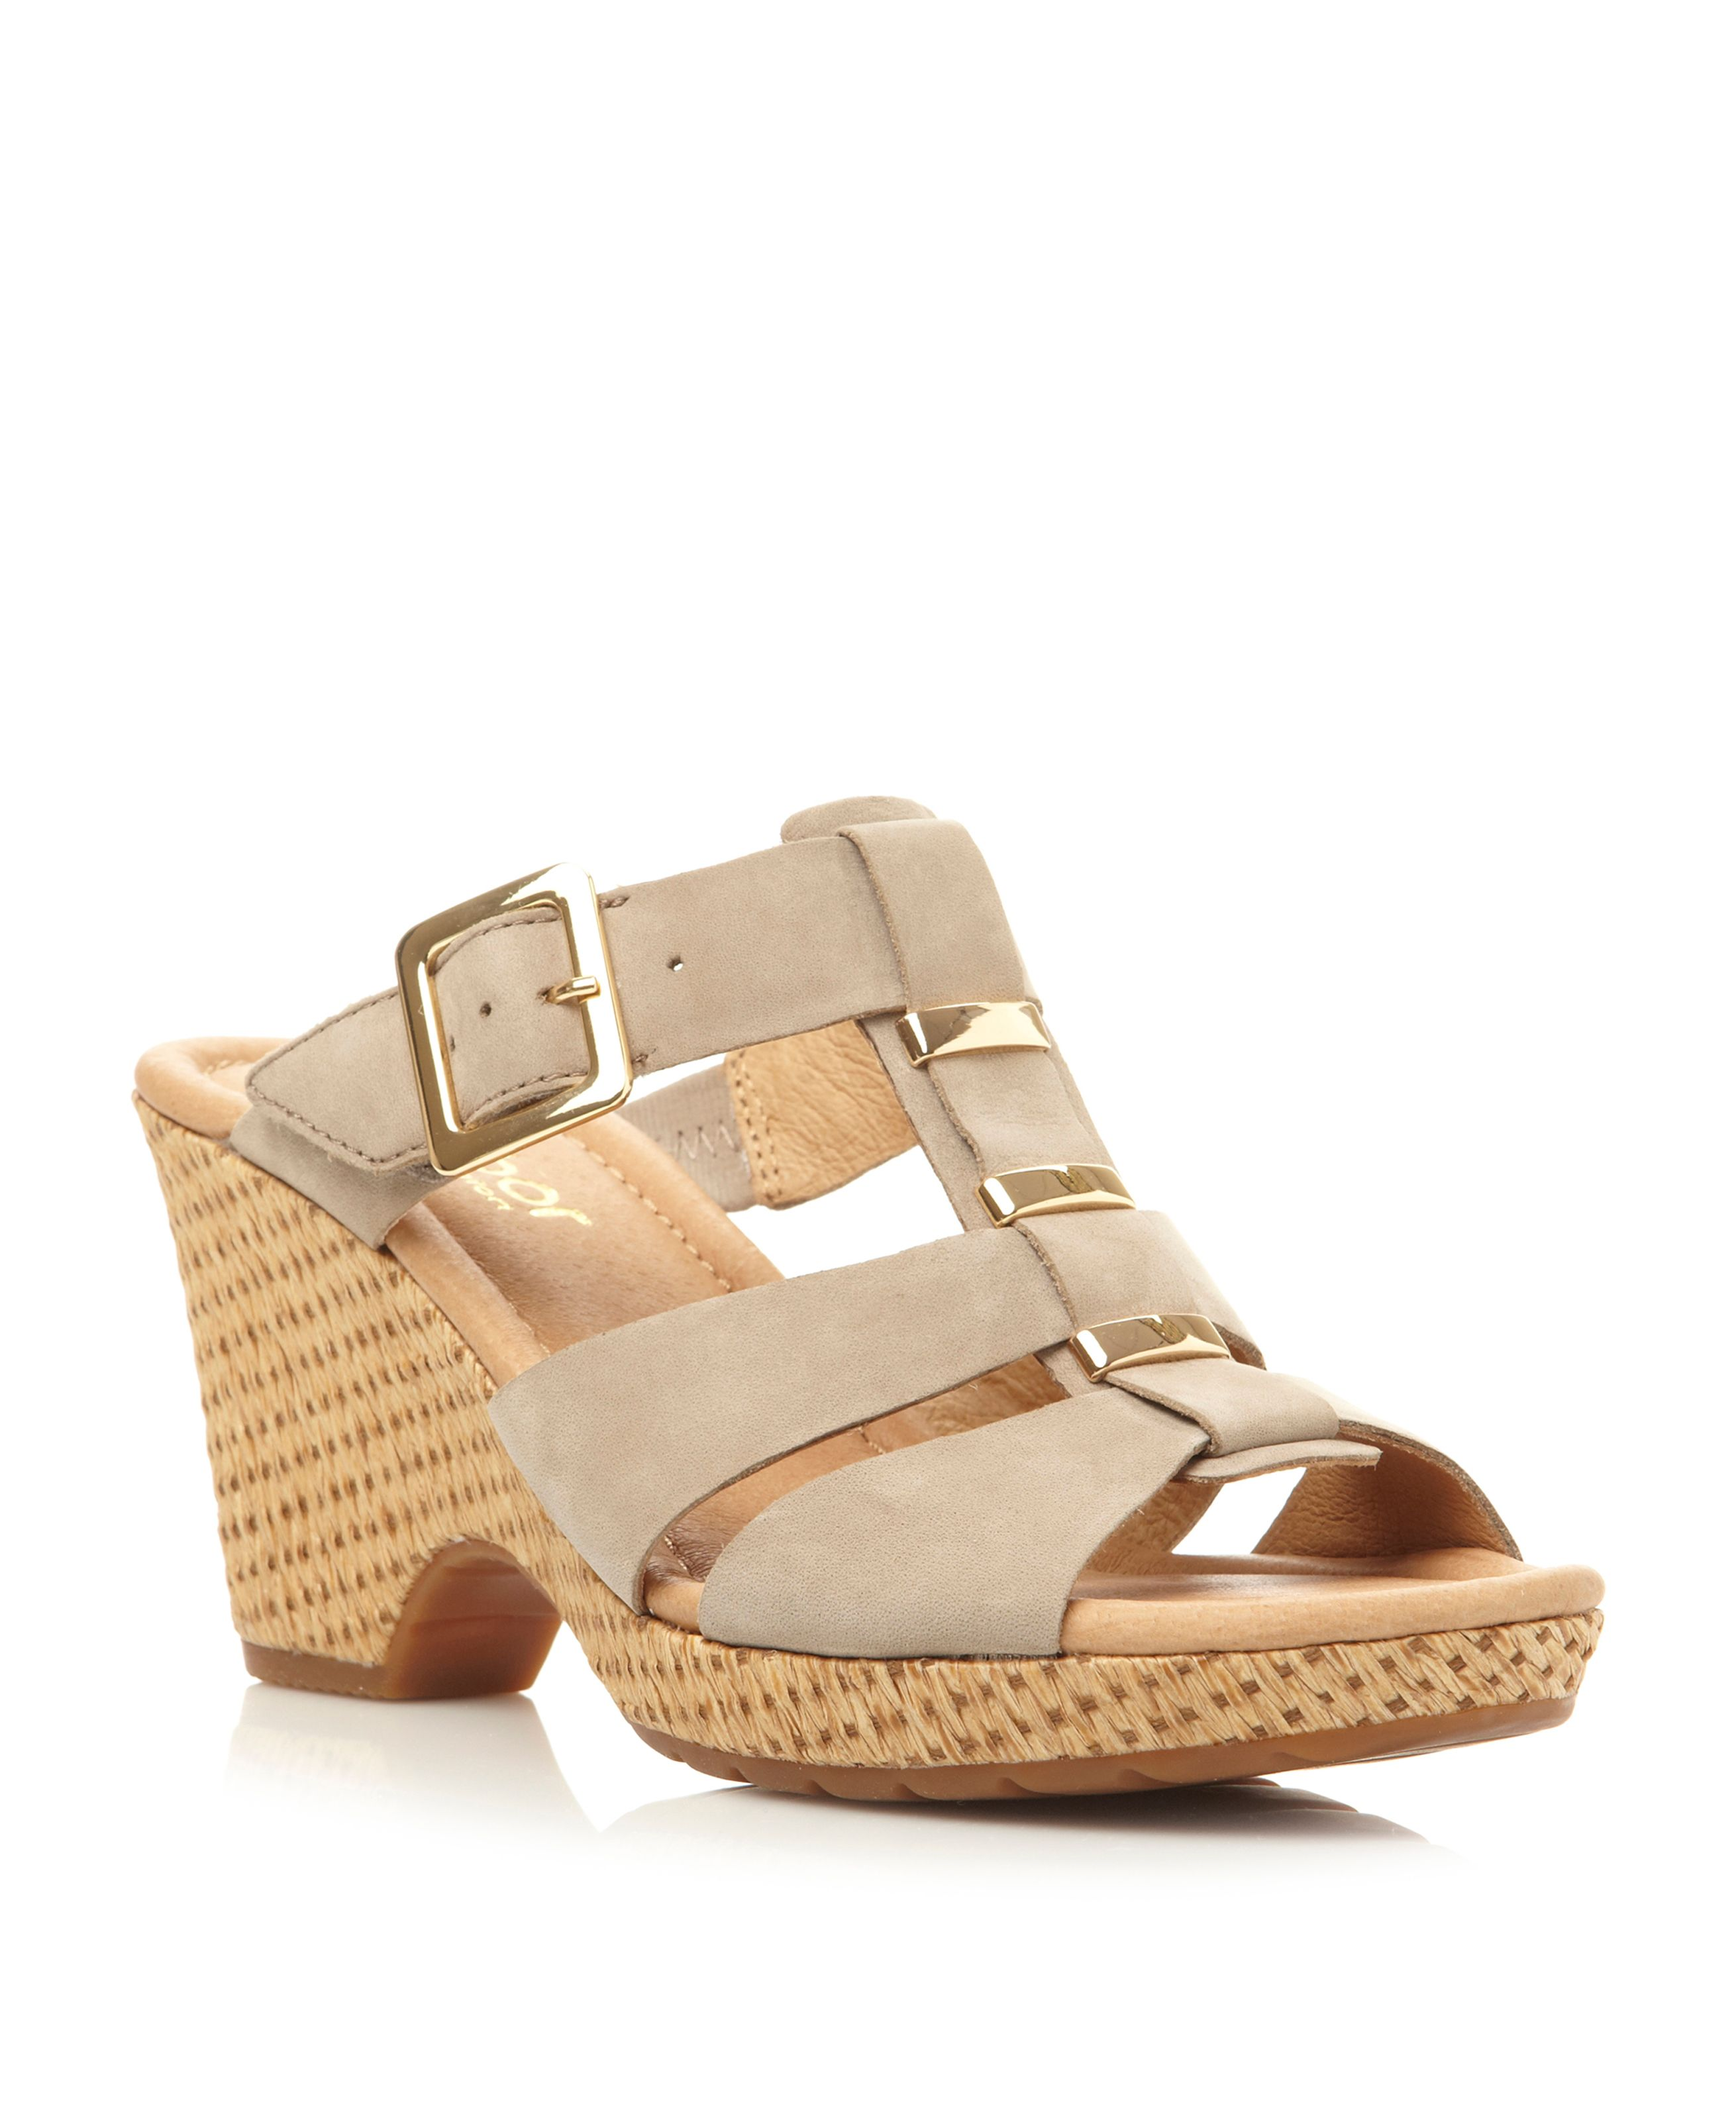 Courage leather buckle wedge sandals